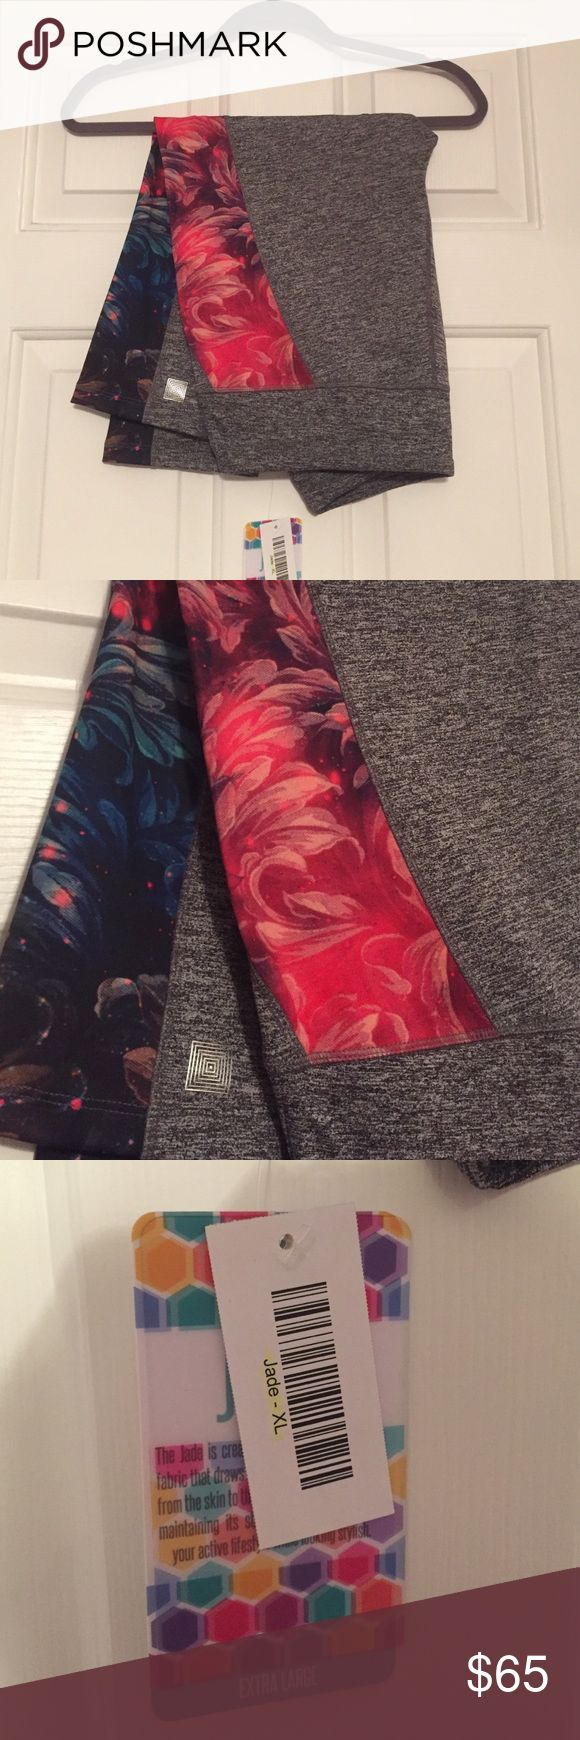 NWT Lularoe Jade Workout Capri Leggings NWT Lularoe Jade Workout Capri Leggings, Size XL, medium gray leggings with a pink, purple, and blue floral pattern on outer thigh. Extra soft and stretchy and brand new!! **Prices are firm unless you bundle and no trades, thank you!** LuLaRoe Pants Leggings